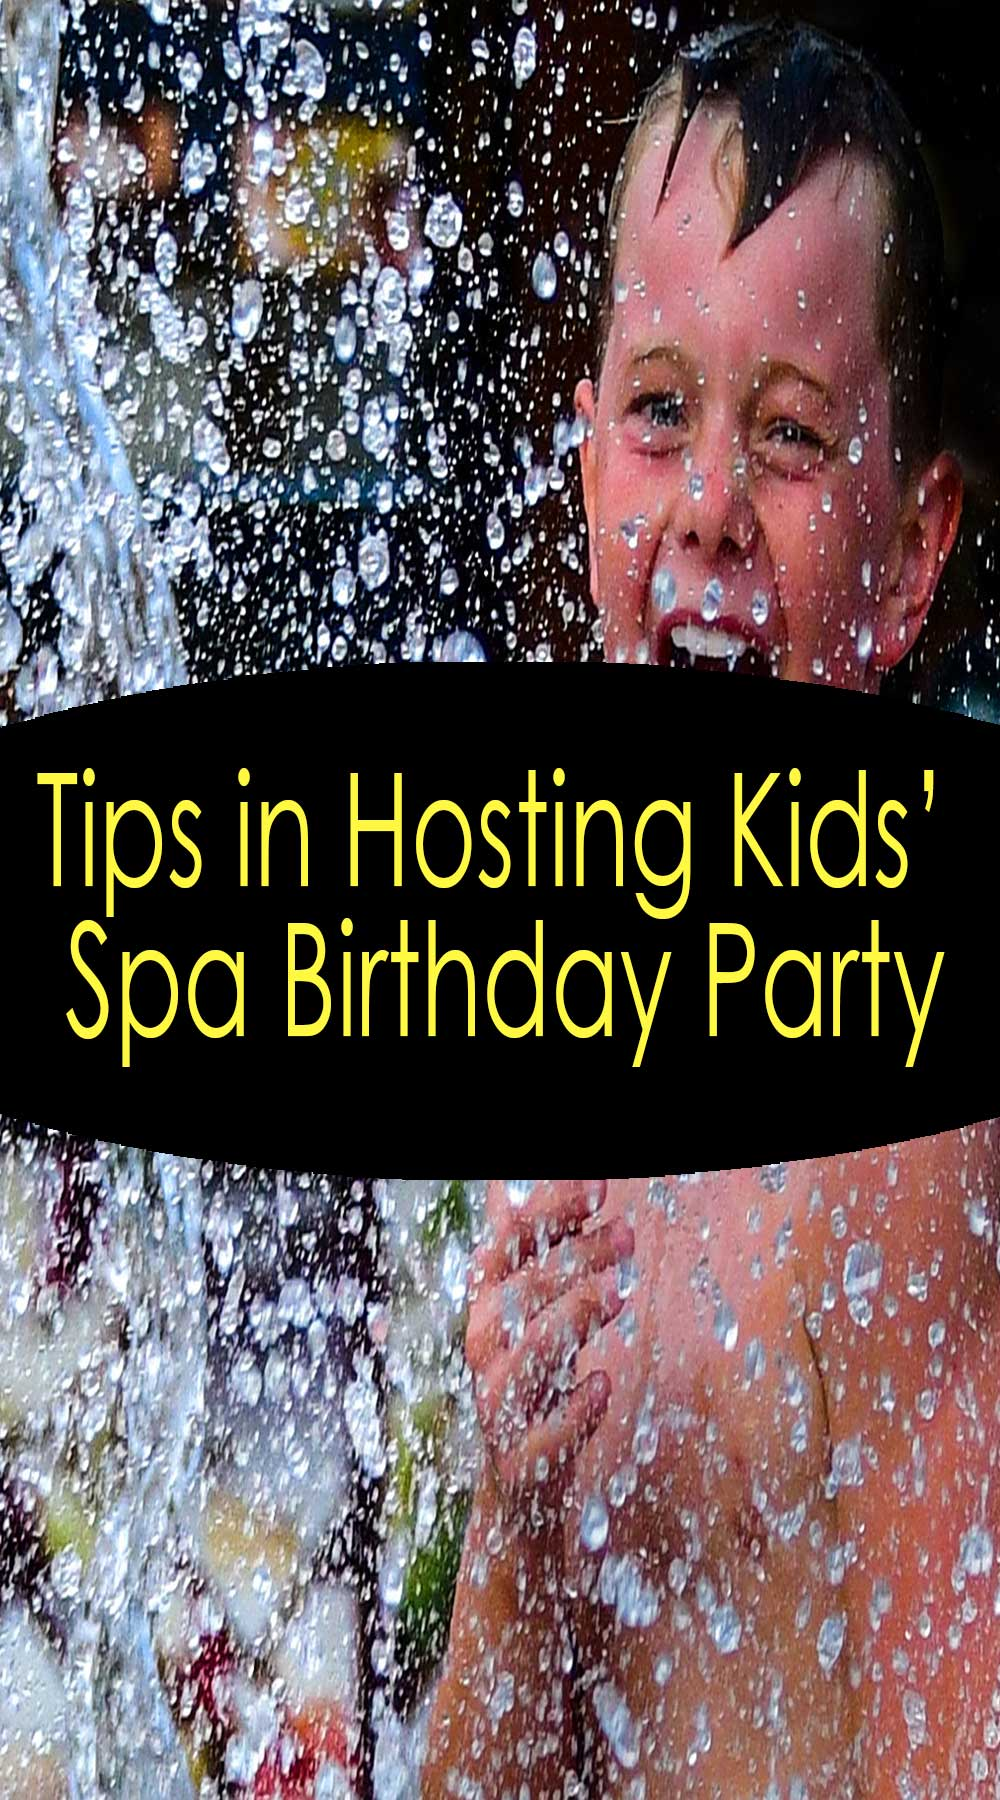 Tips in Hosting Spa Birthday Party